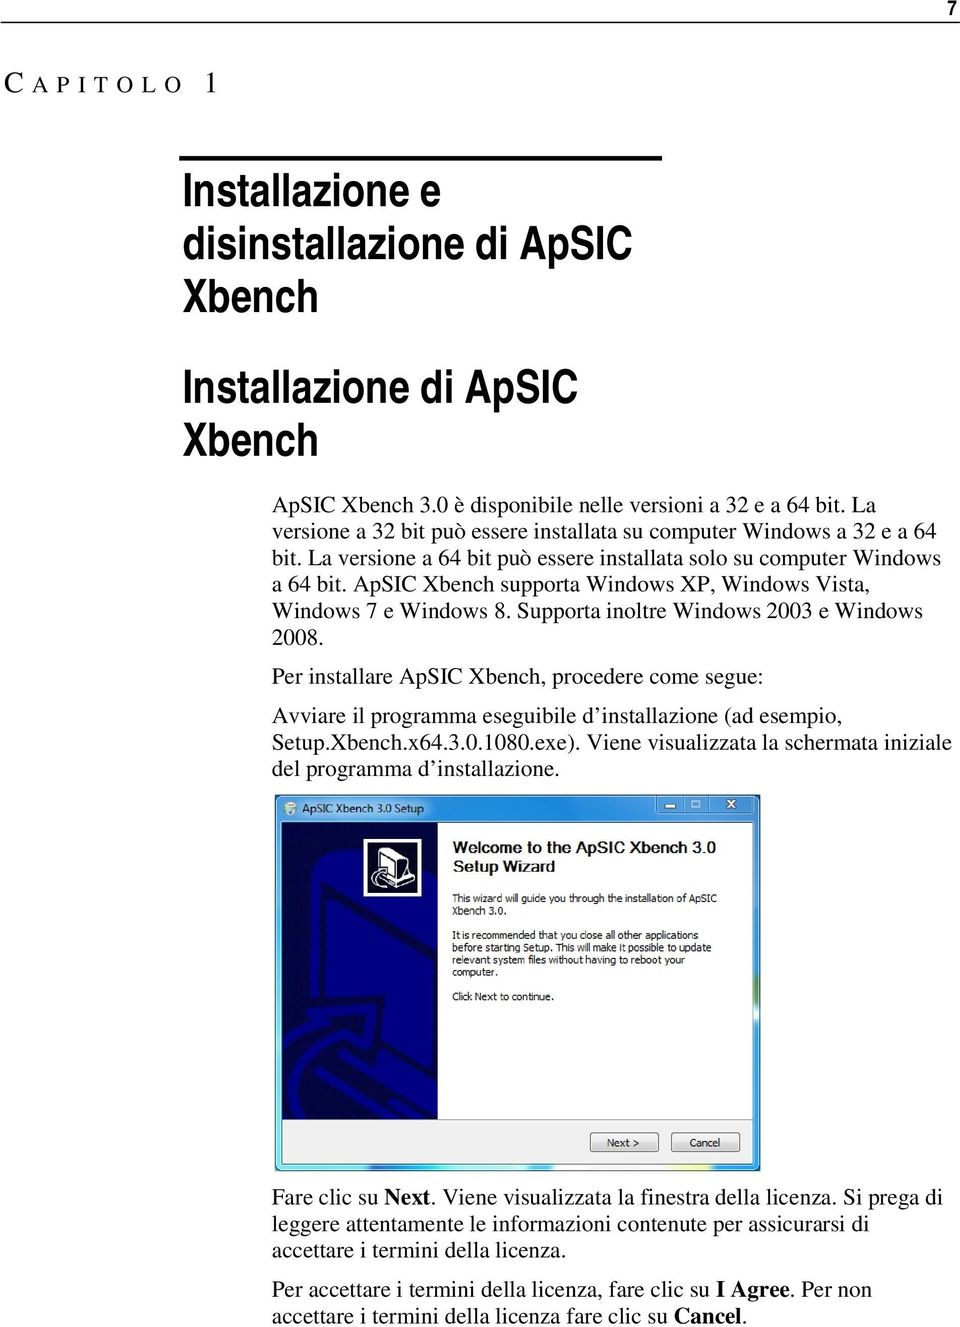 ApSIC Xbench supporta Windows XP, Windows Vista, Windows 7 e Windows 8. Supporta inoltre Windows 2003 e Windows 2008.